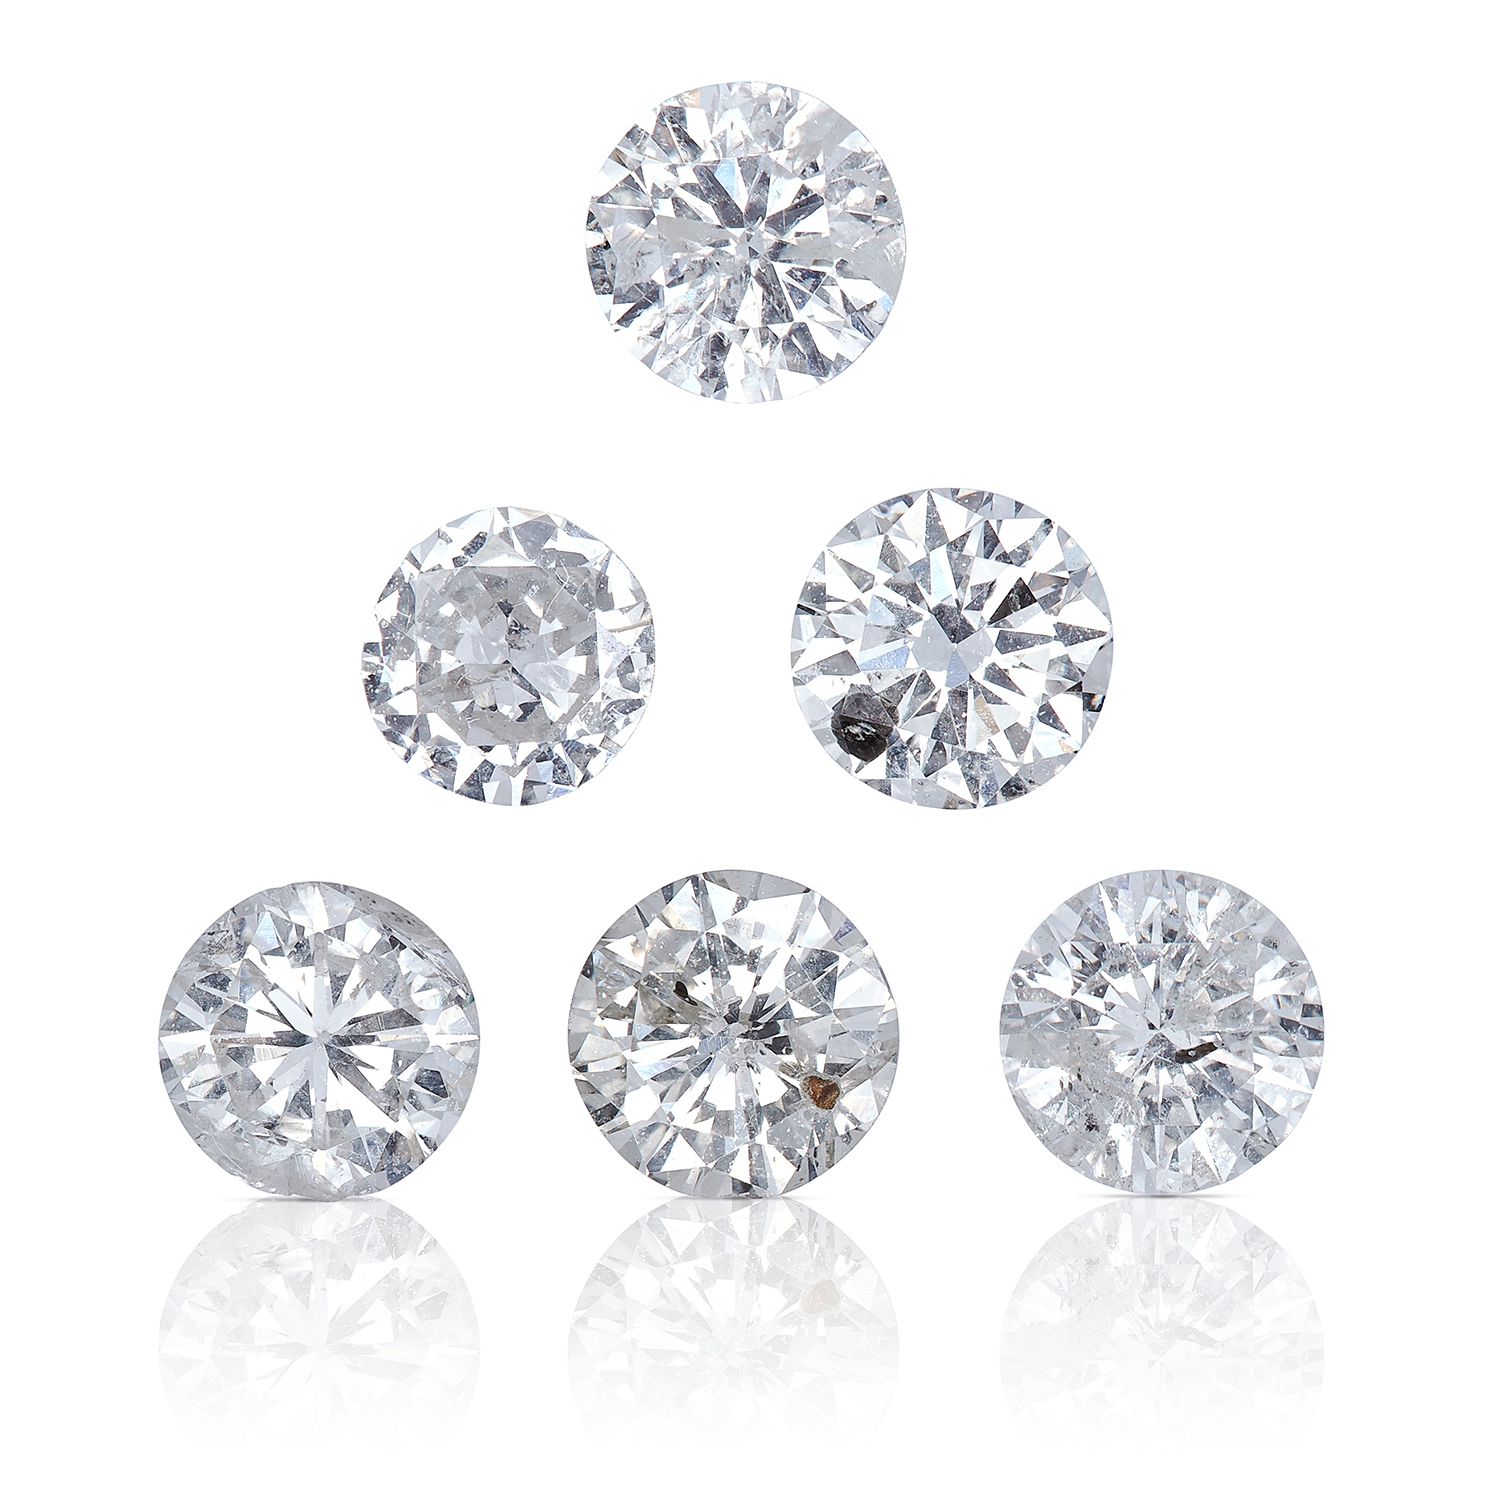 SIX ROUND CUT MODERN BRILLIANT DIAMONDS, TOTALLING 2.53cts, UNMOUNTED.